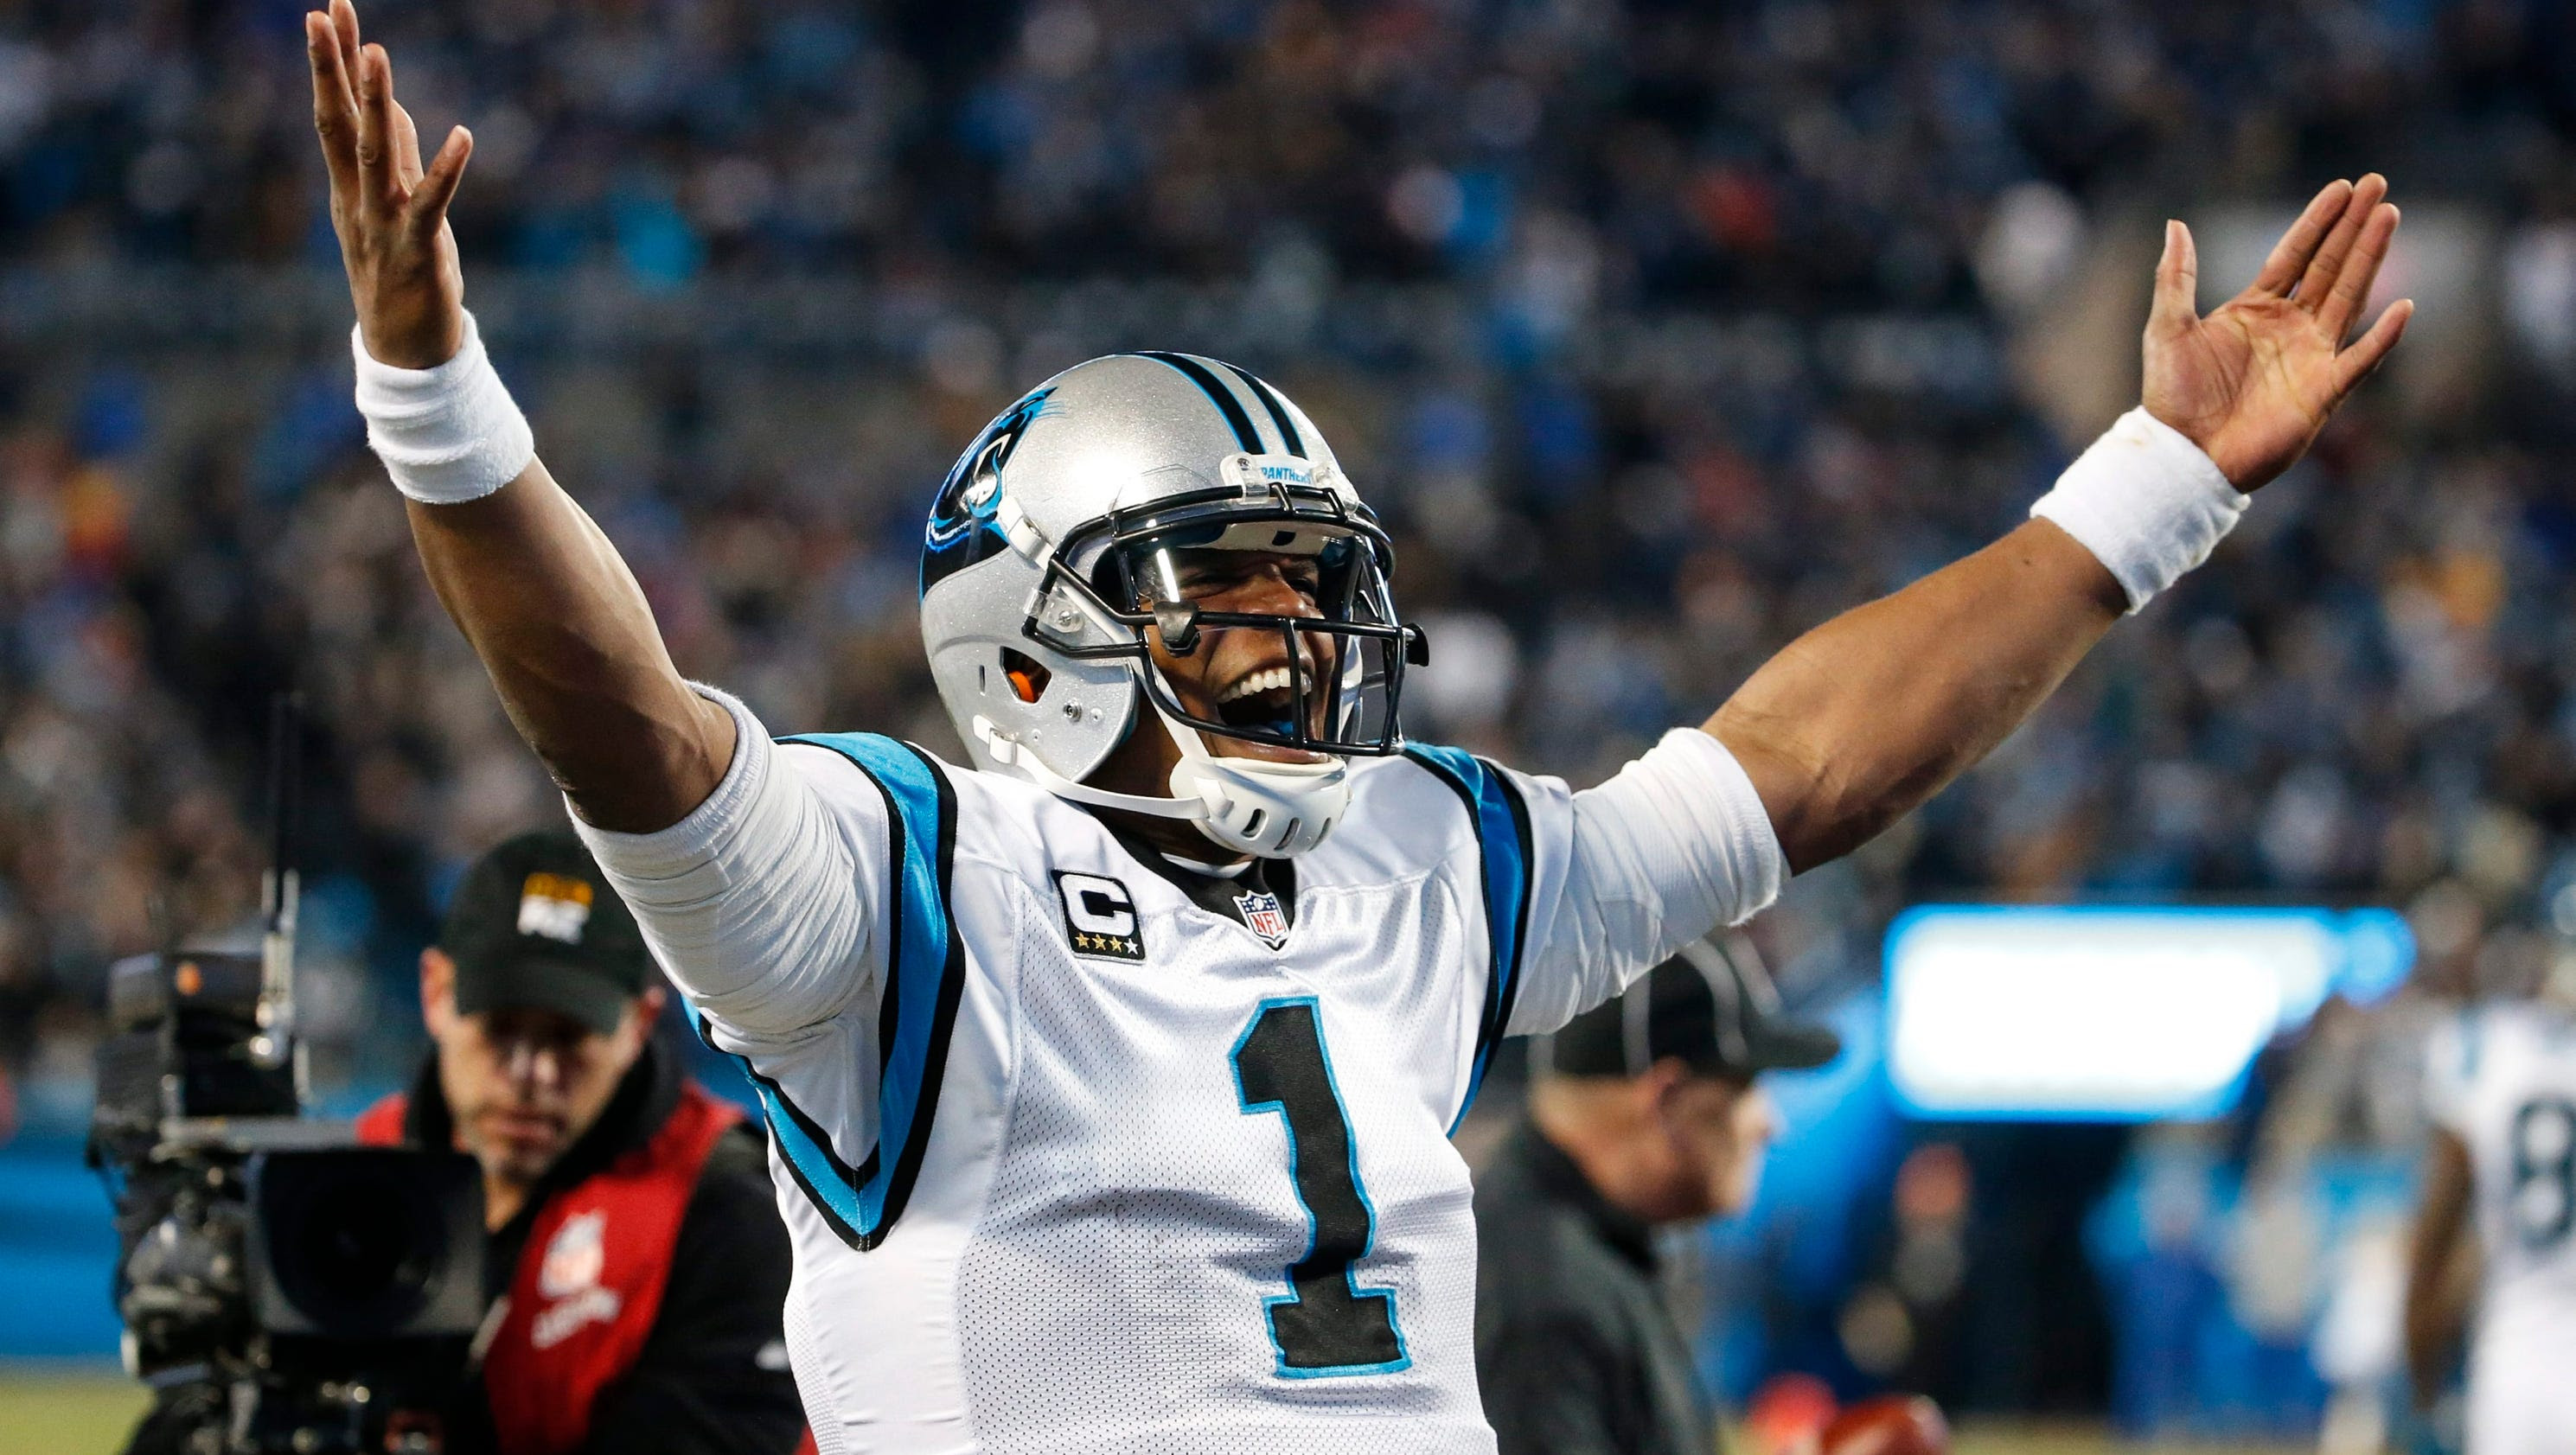 Cutting the Cord: CBS Sports is streaming Super Bowl 50 for free